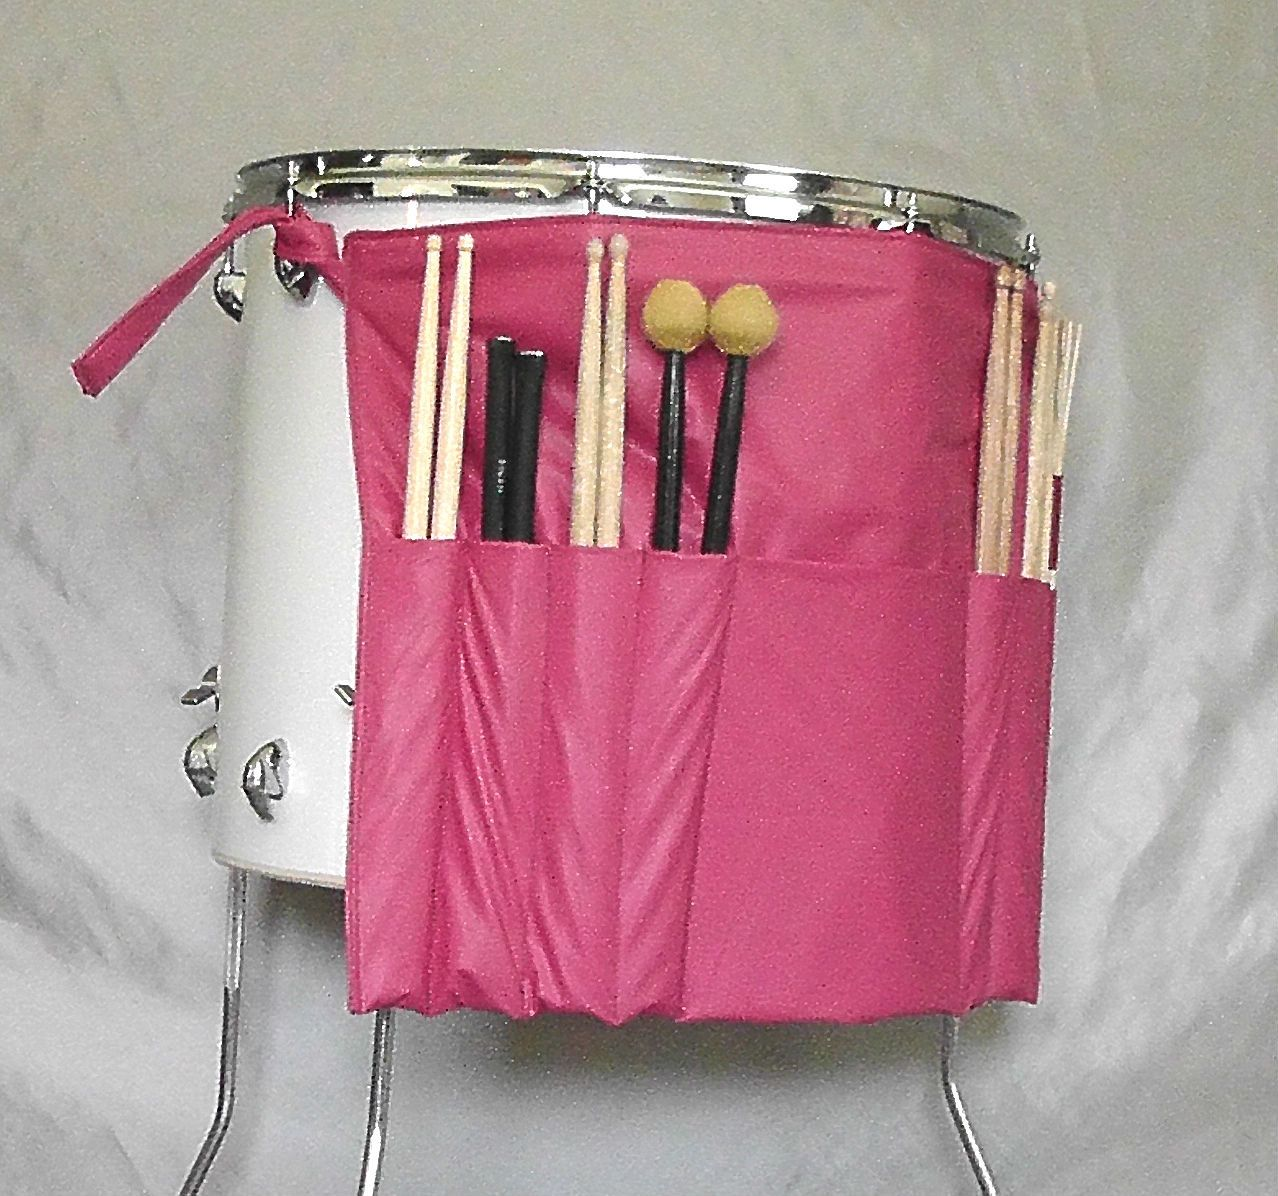 Roll It Ups Drumstick Bag Drum Stick For